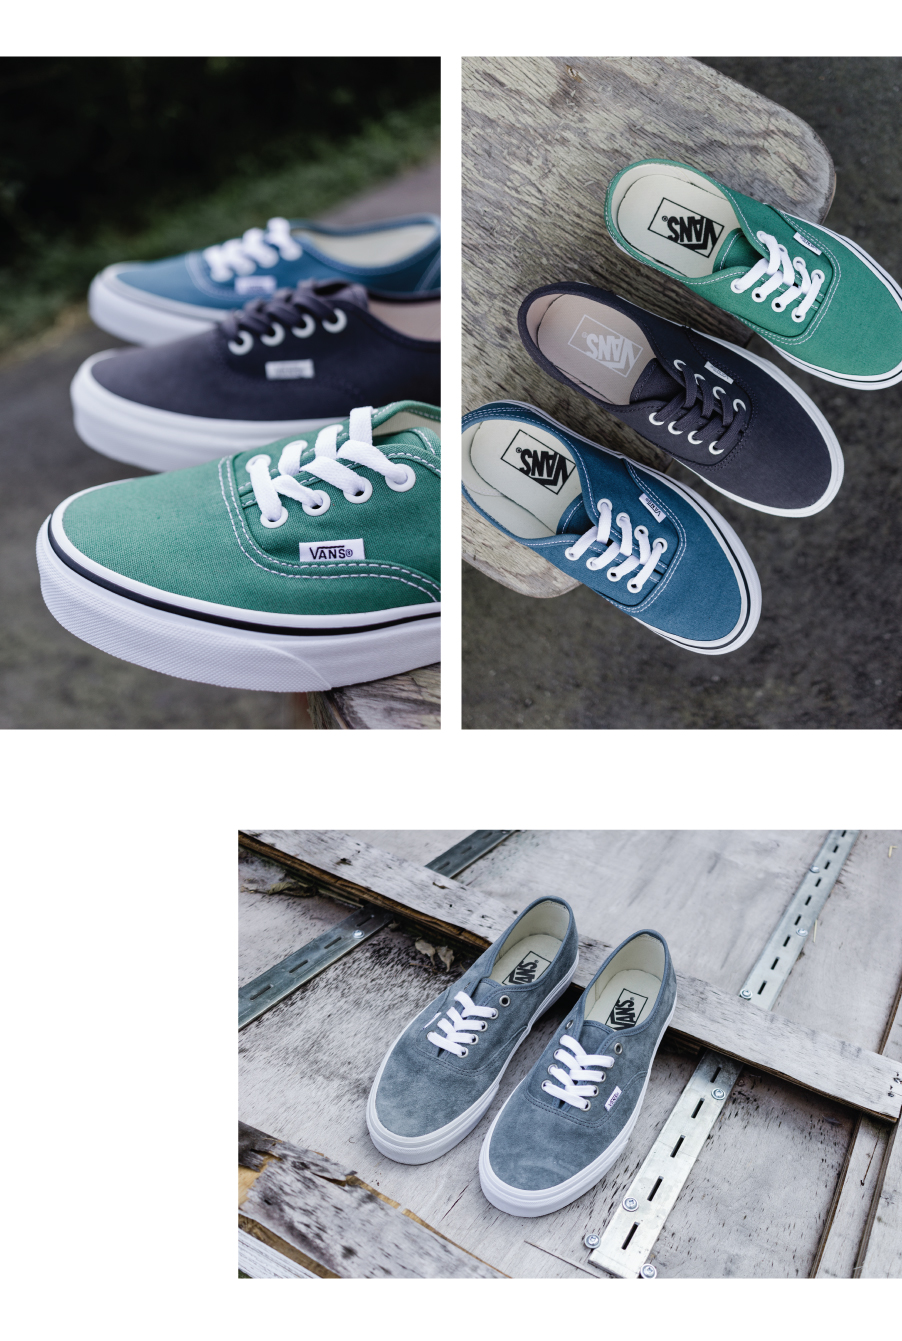 Vans Shoes at Premium Label Outlet